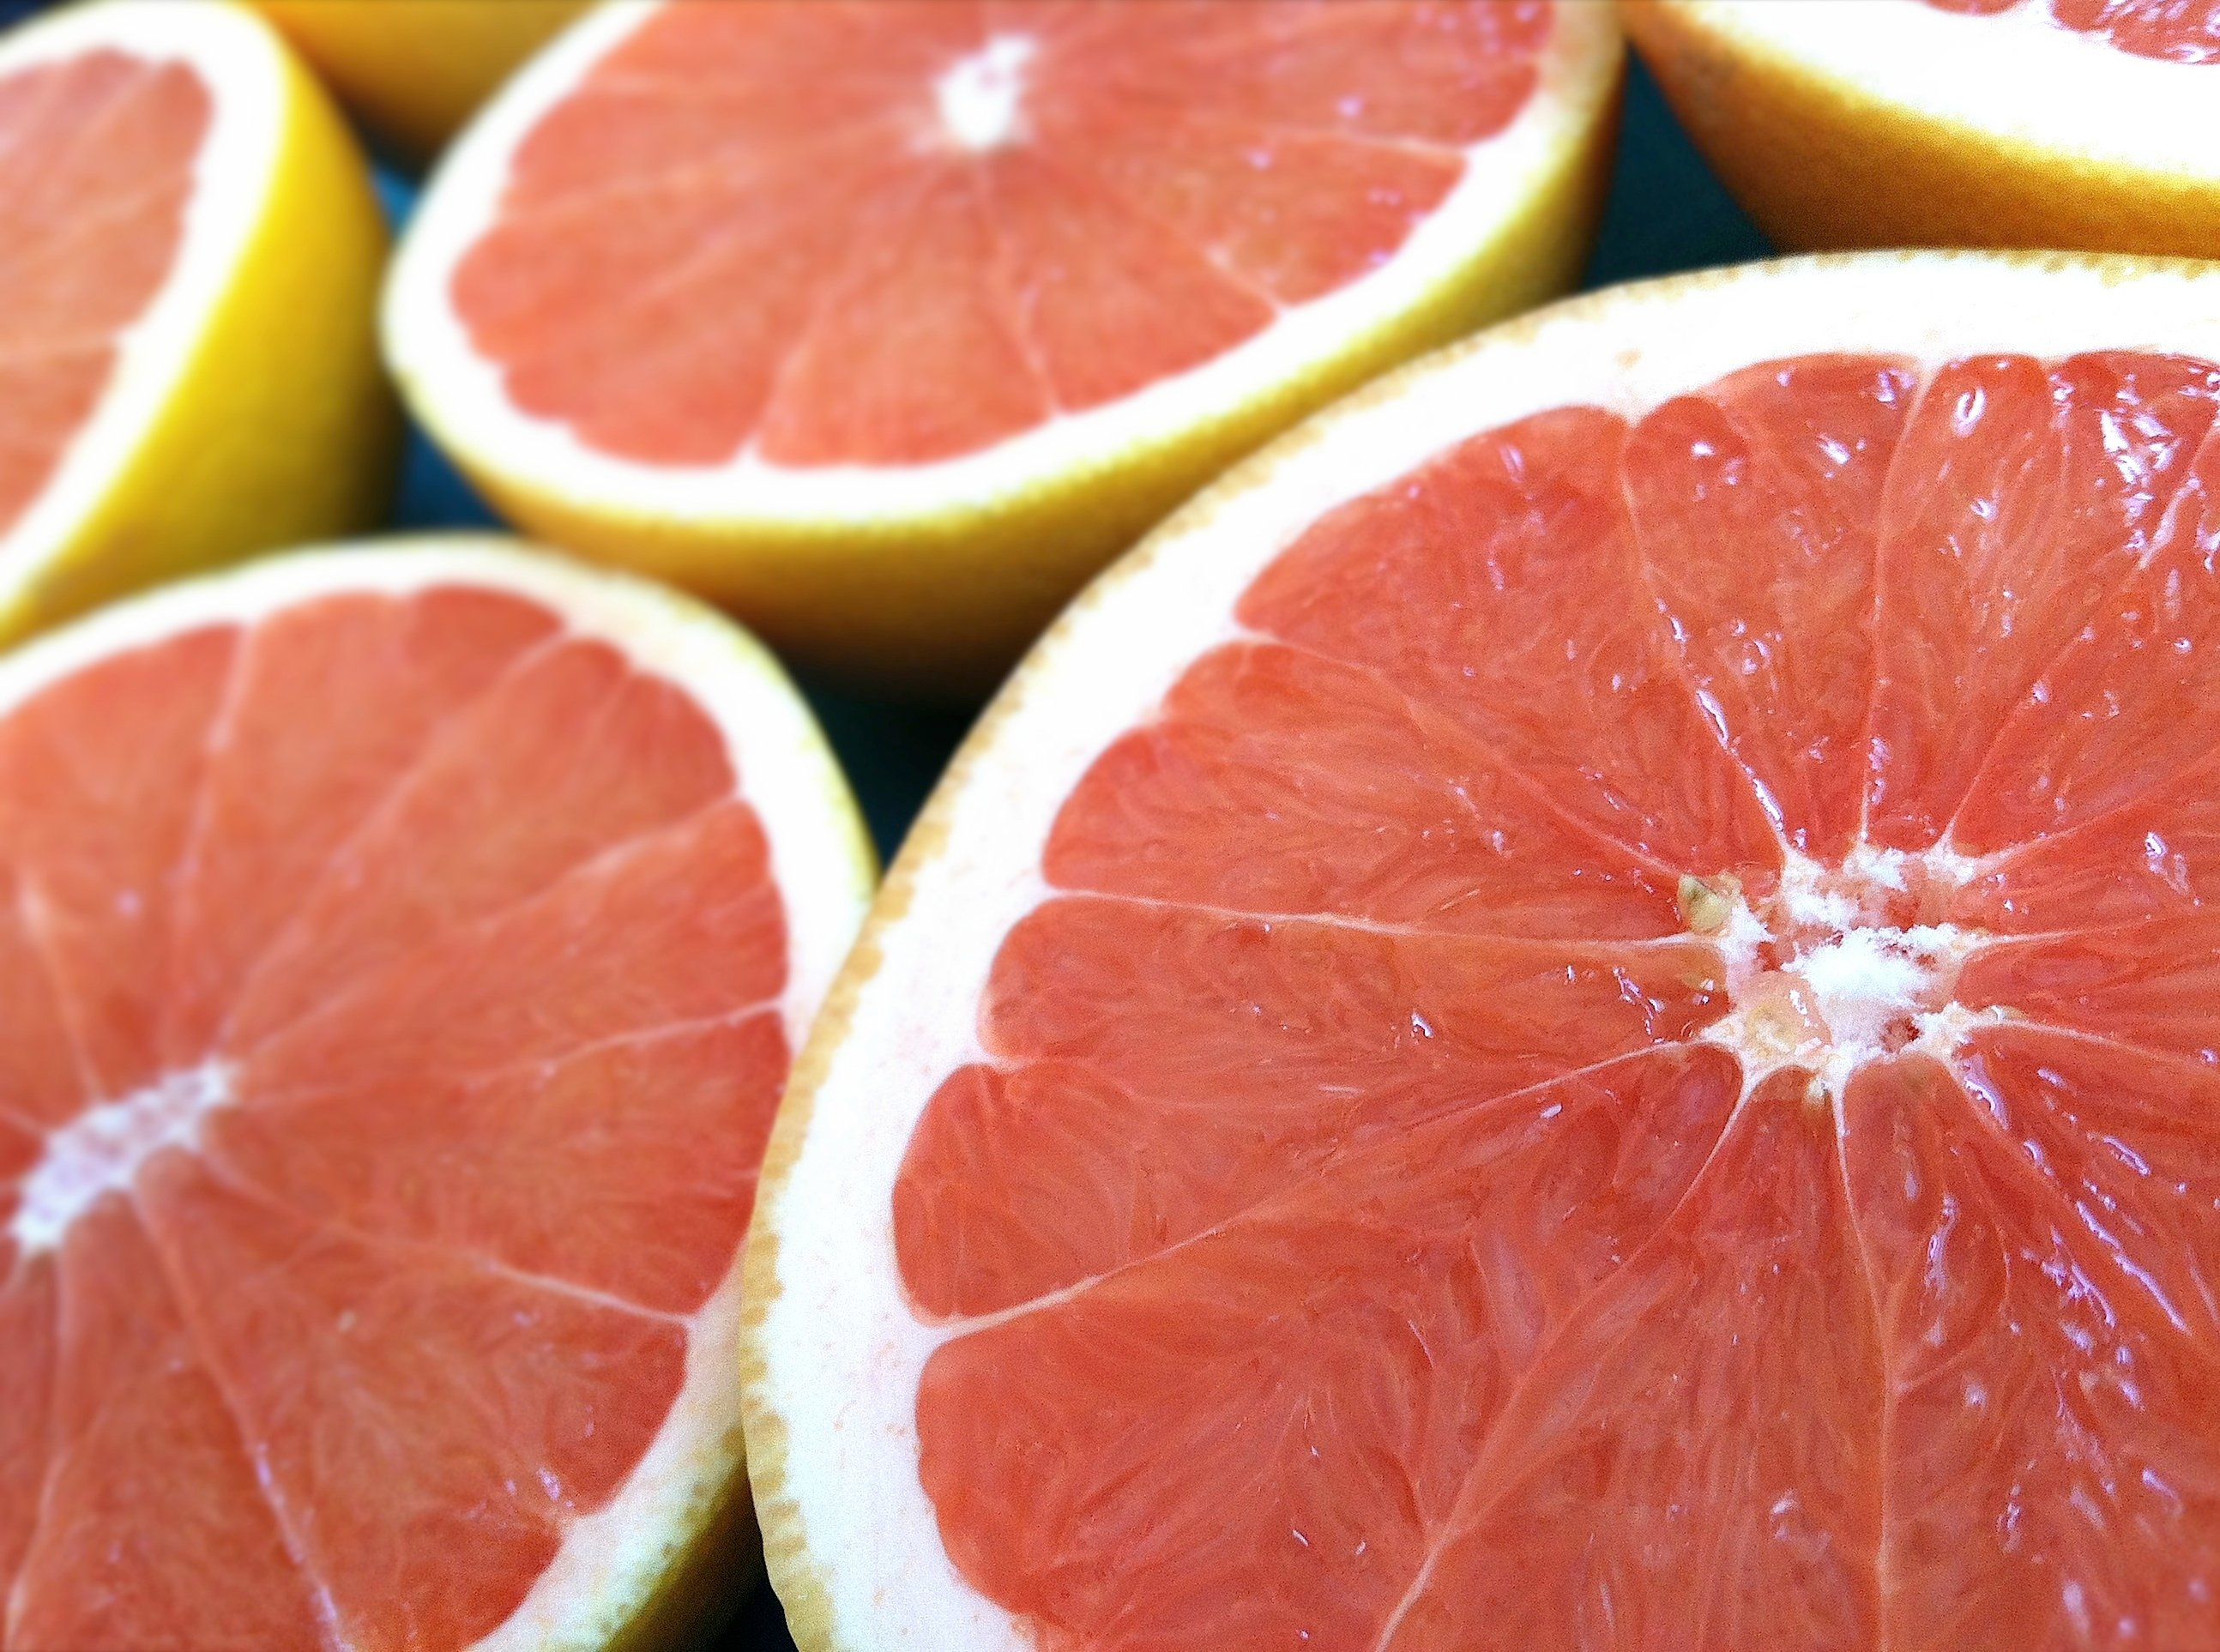 how to cut a grapefruit to eat with a spoon